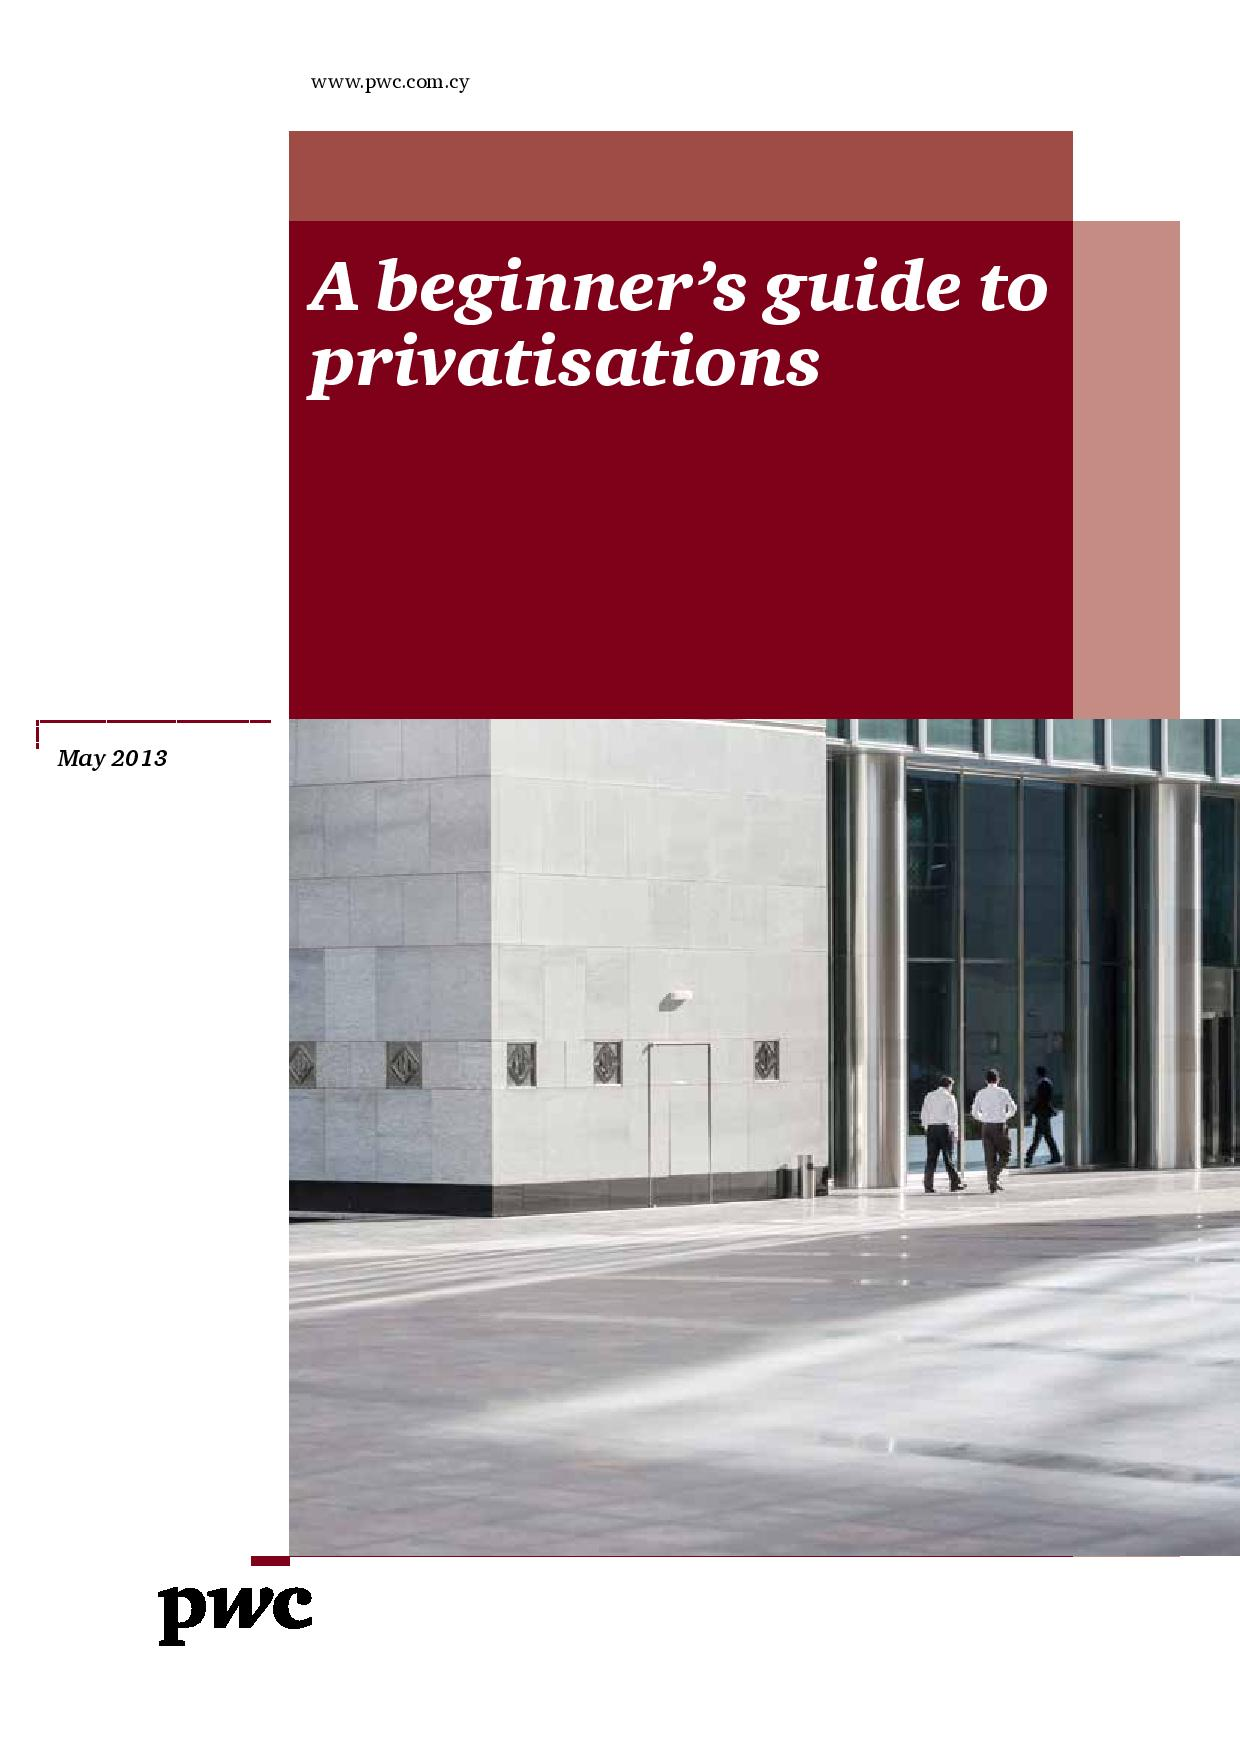 A beginner's guide to privatisations